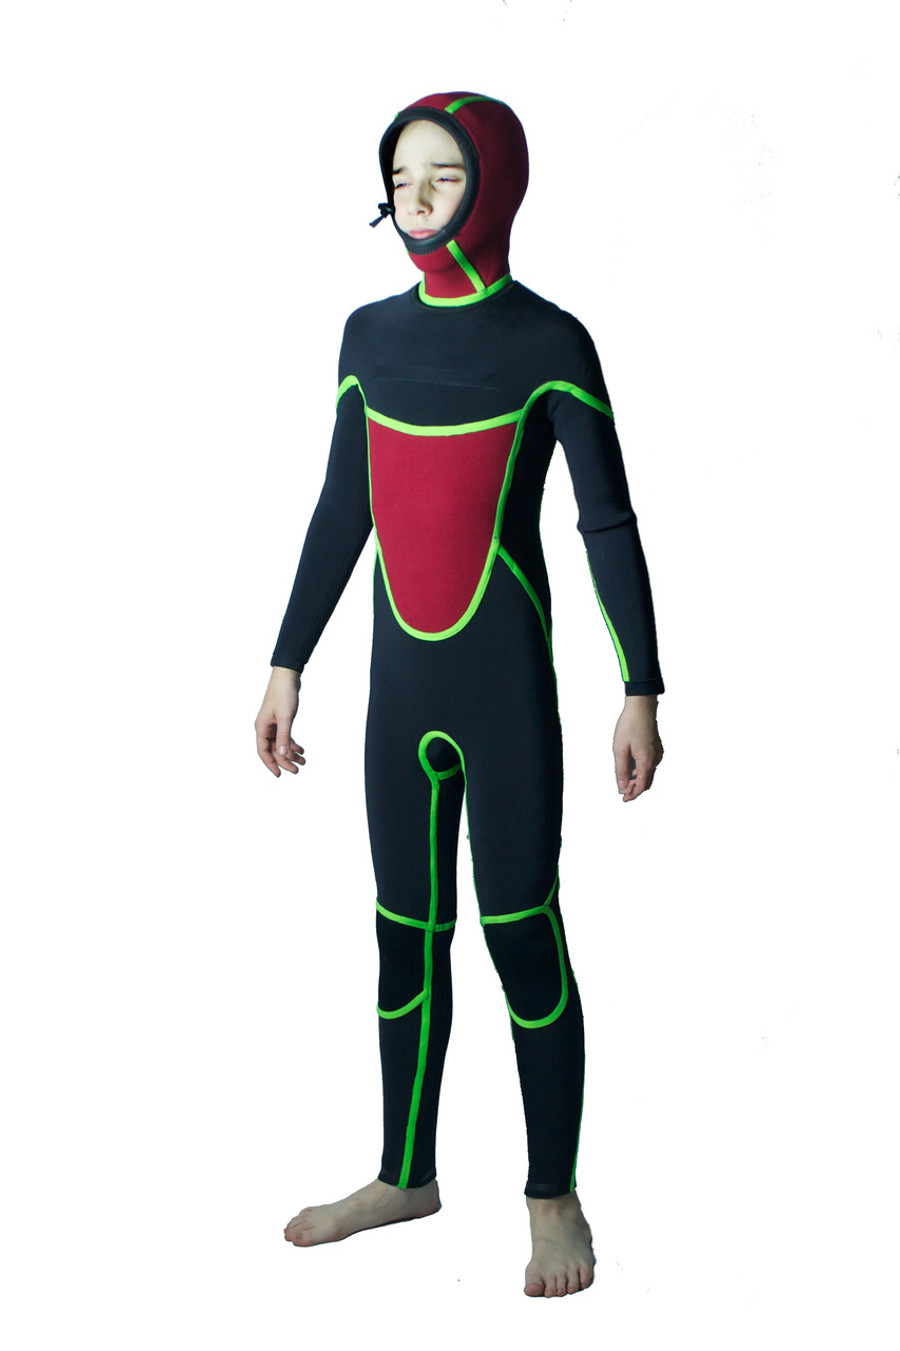 Inside out - Childrens hi-performance winter wetsuit. Thermal chest, back, hood.